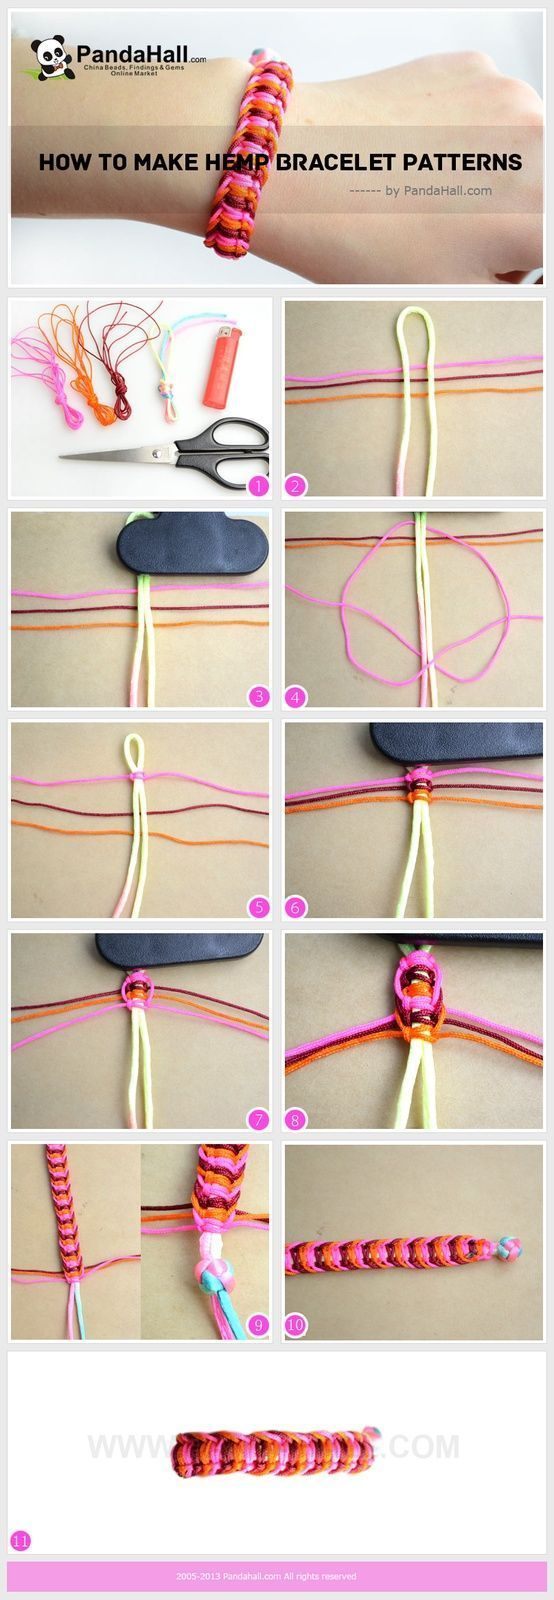 best craft ideas images on pinterest bricolage crafts and